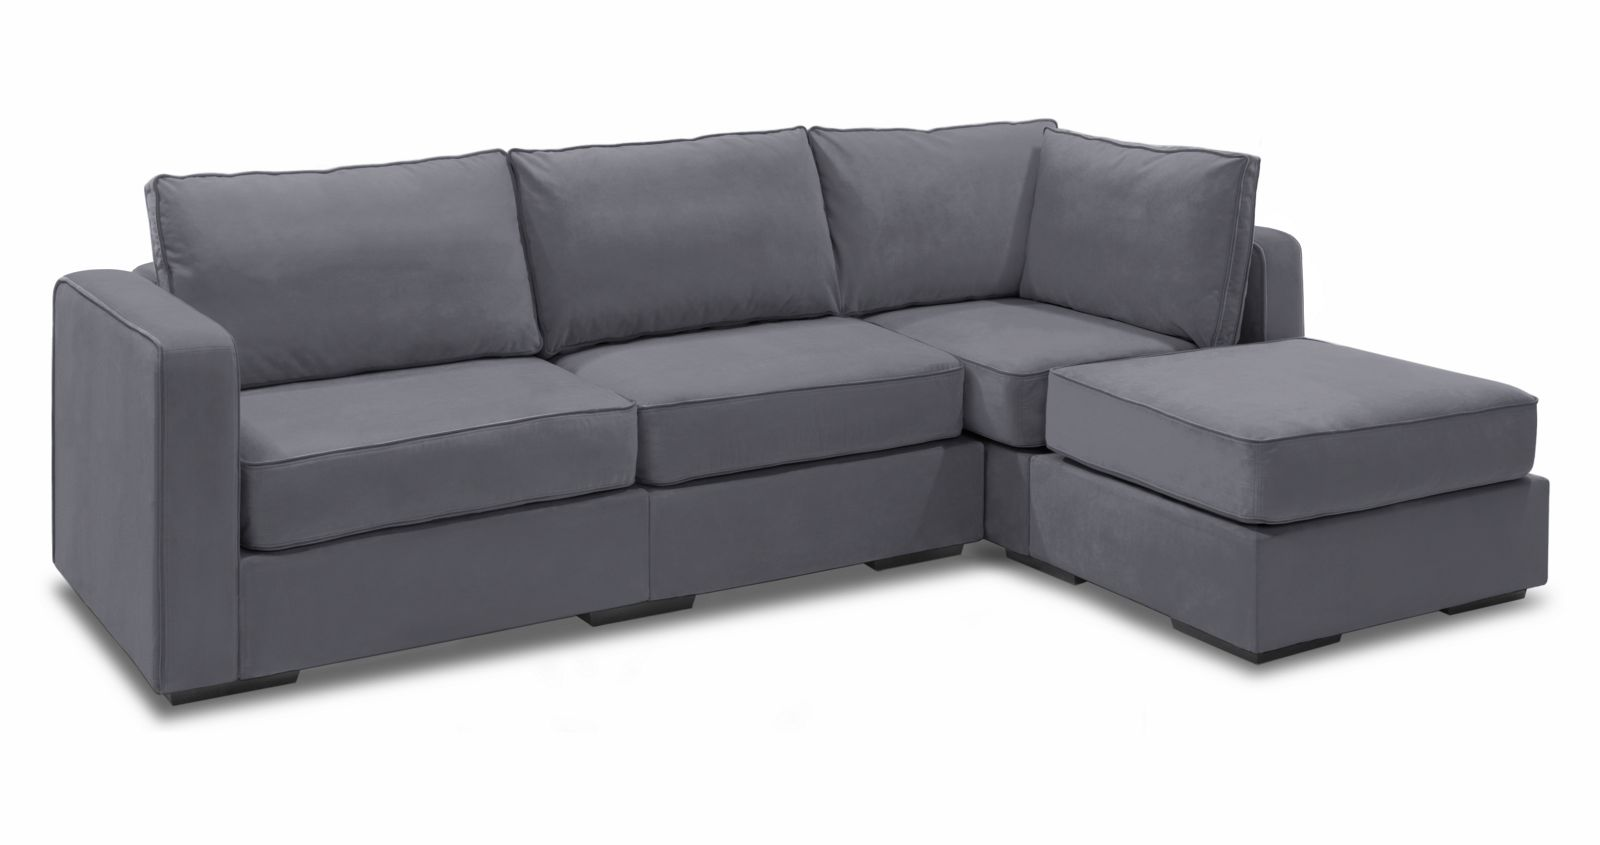 Favorite Finds: Family Friendly Sofas - LBF Interiors